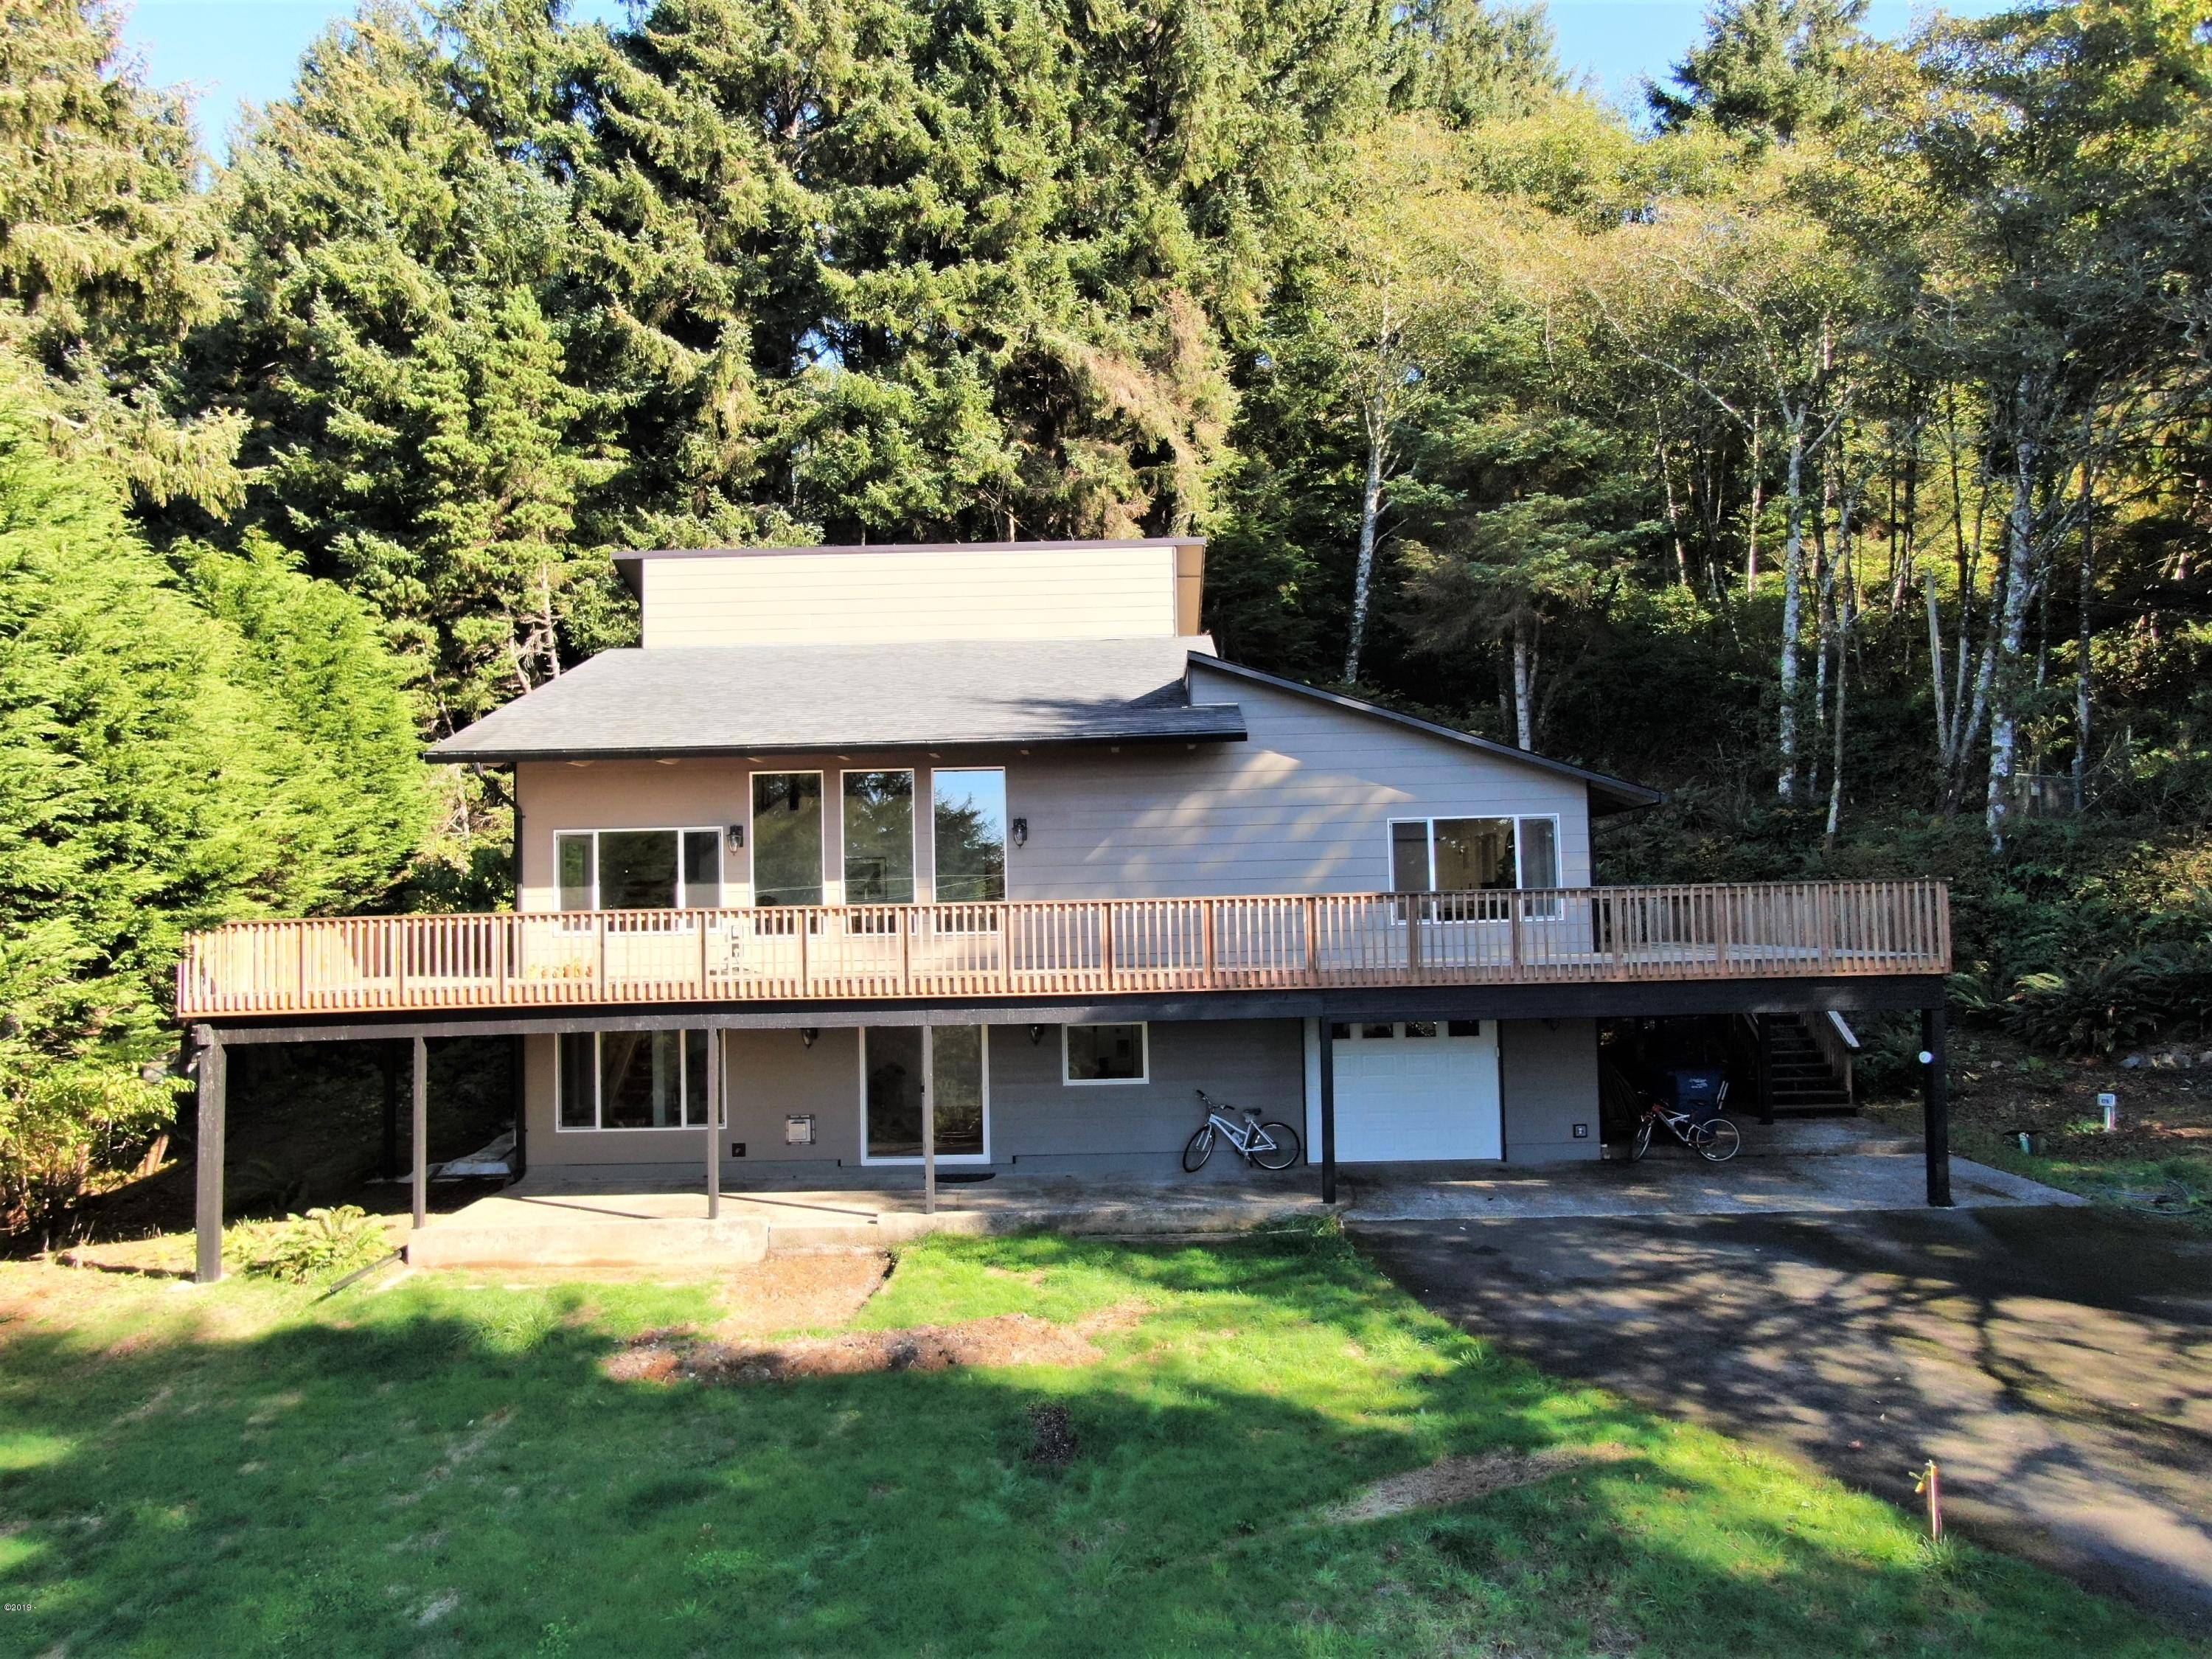 900 S Hwy 101, Depoe Bay, OR 97341 - front of house 2 copy